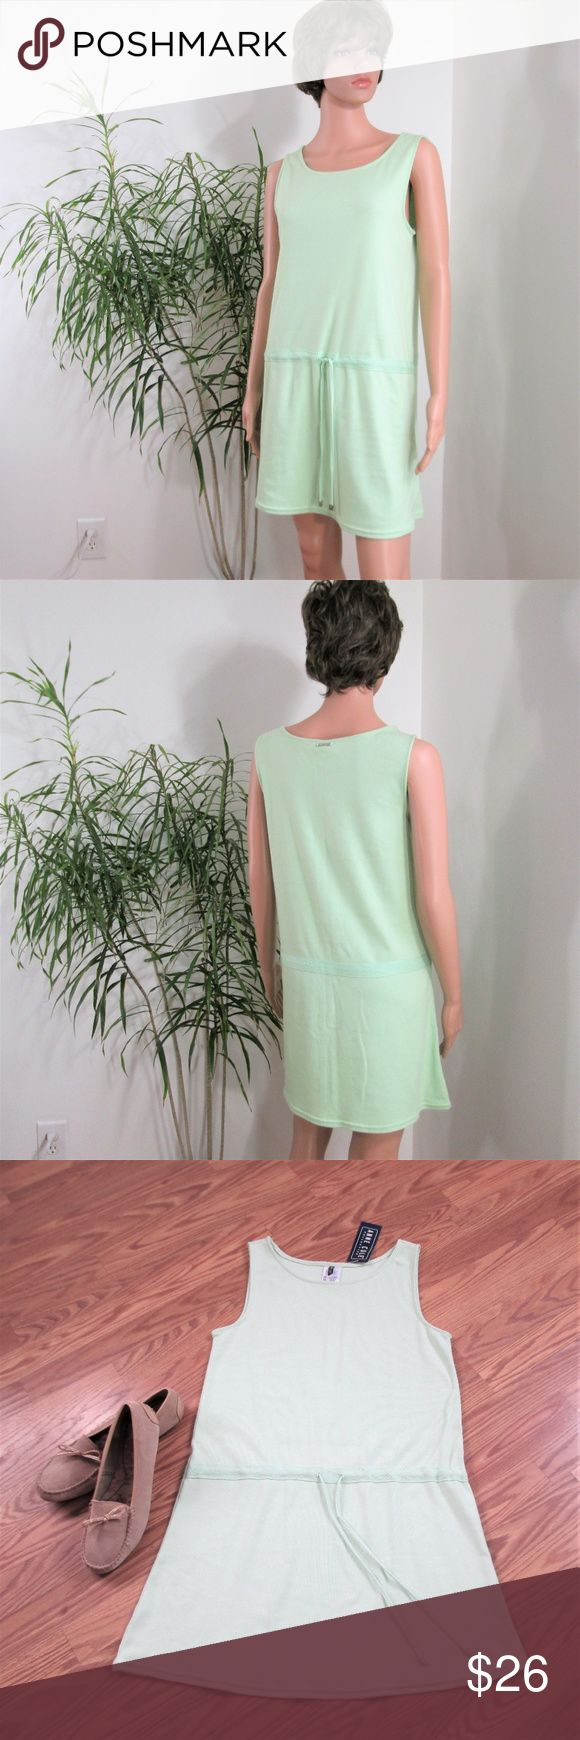 """New! Anne Cole* Athletic Dress / Coverup Soft 100% Cotton jade green sheath dress, drawstring waist is accented with grosgrain ribbon. A summer staple- throw & go!  Measured flat. 18"""" pit to pit. 18"""" waist. 20"""" hip. 33"""" long. above knee on 5' 9'' mani Anne Cole Dresses"""